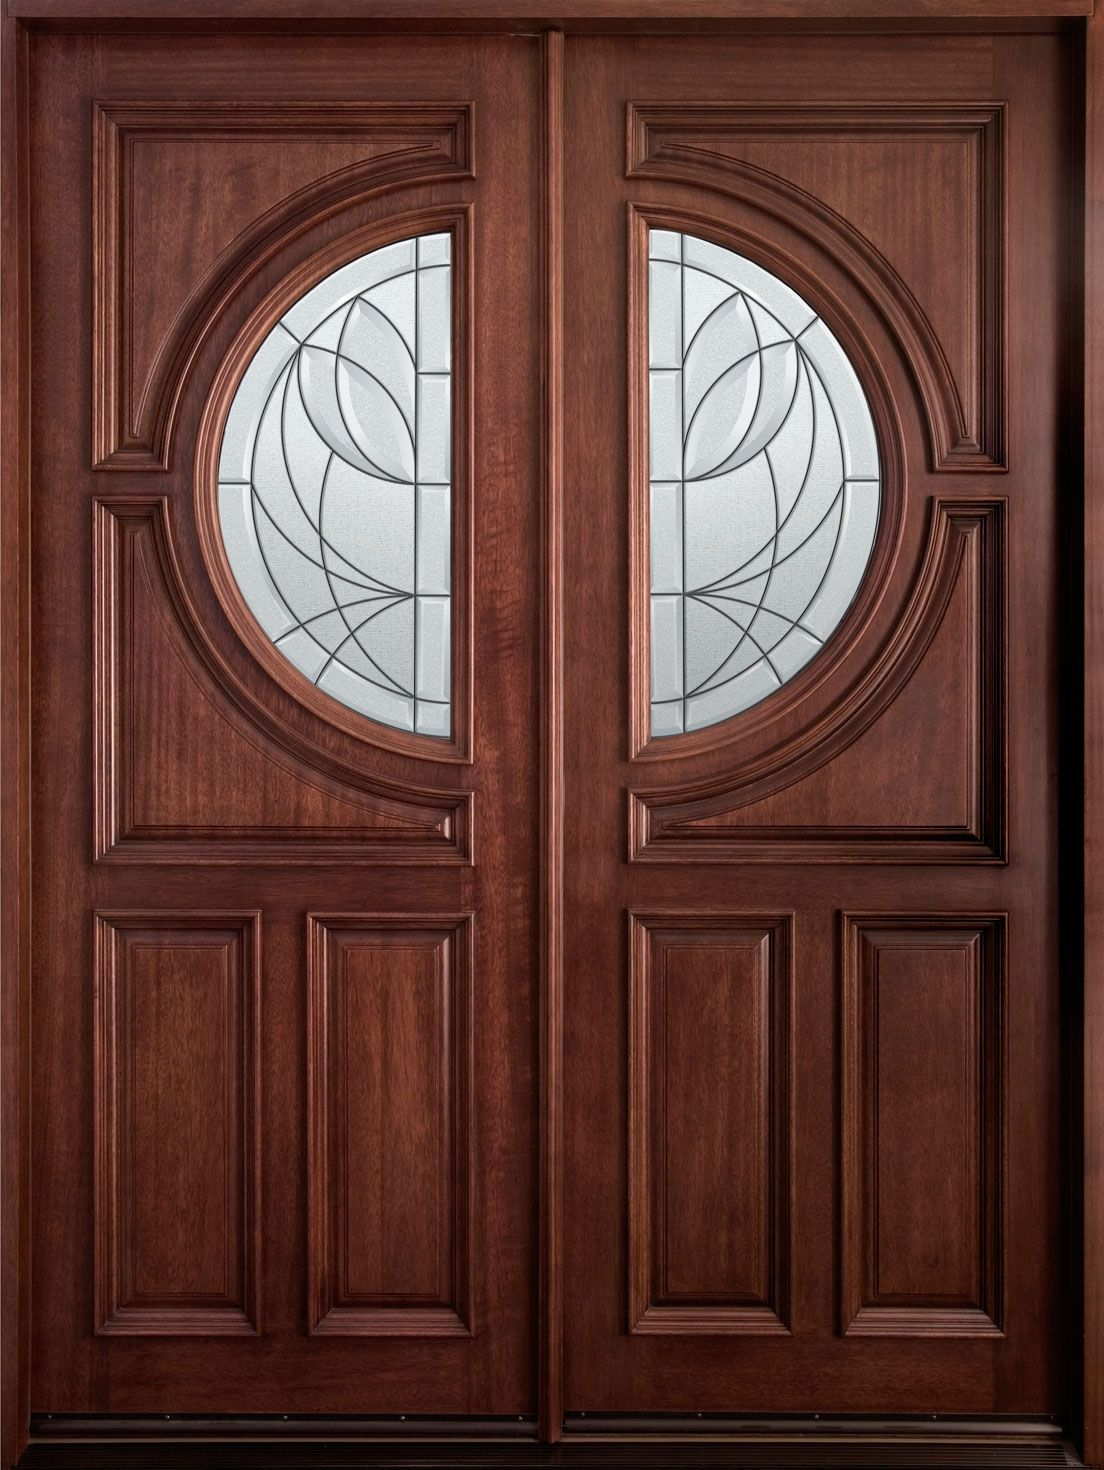 Wood Entry Doors From Doors For Builders Inc Solid Wood Entry